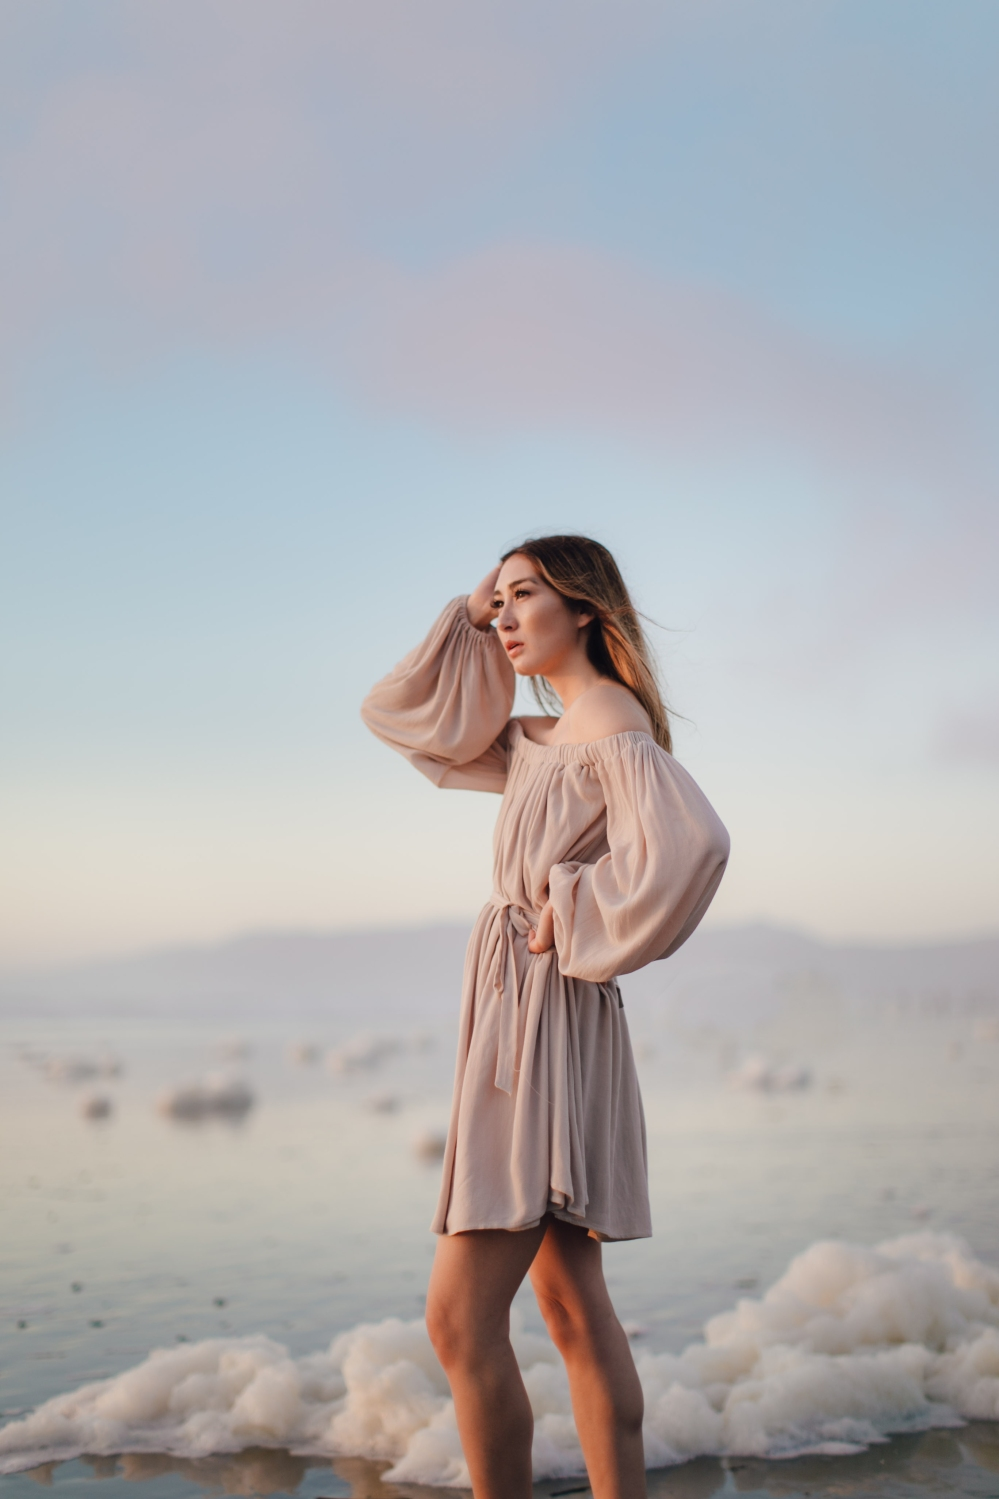 clouded-alyssa-nicole-hannah-dress-ocean-beach-2